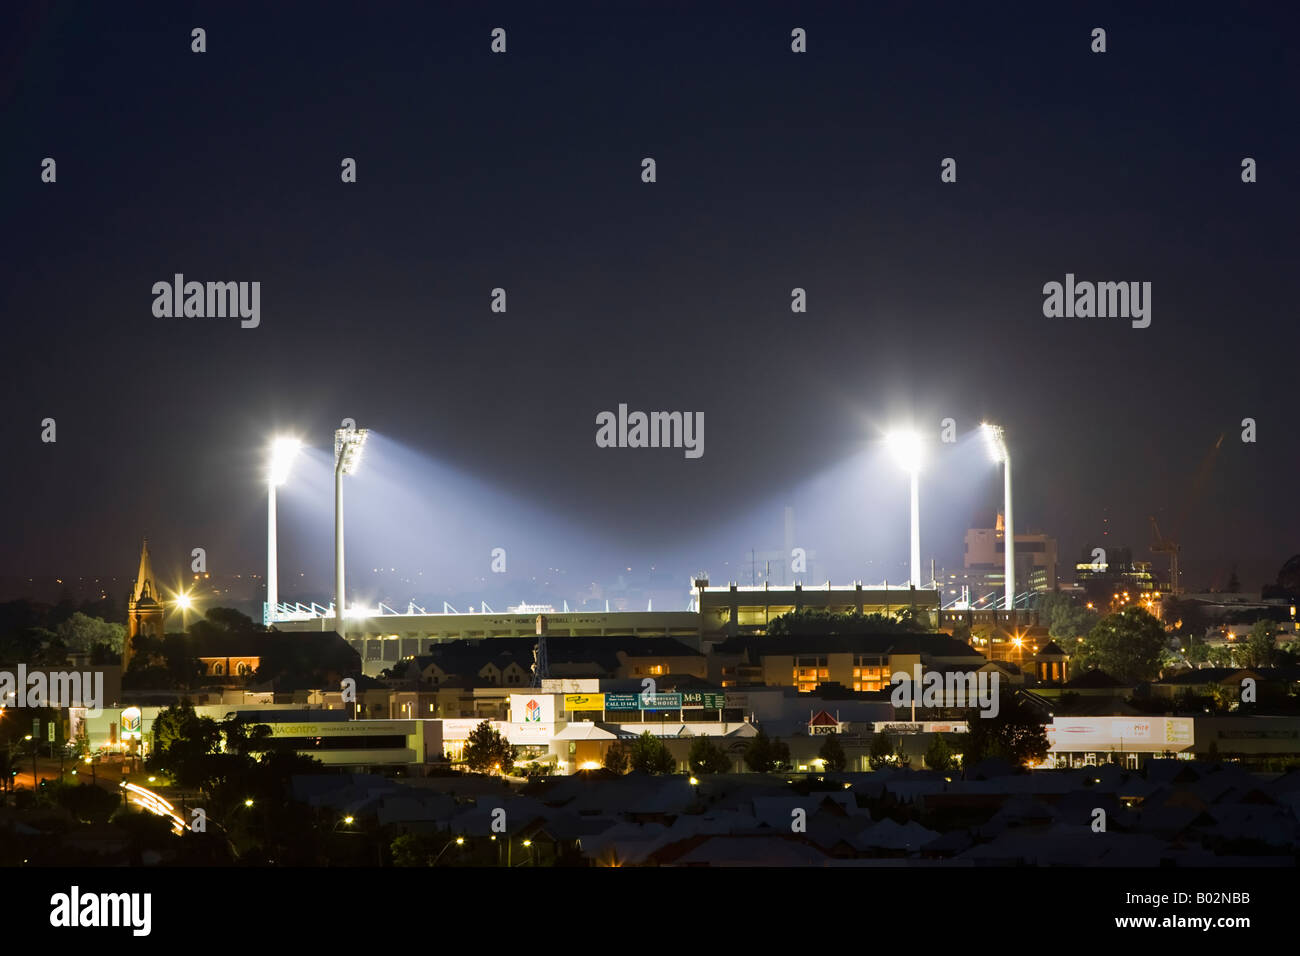 Subiaco Oval stadium in Perth, Western Australia with the floodlights on. - Stock Image